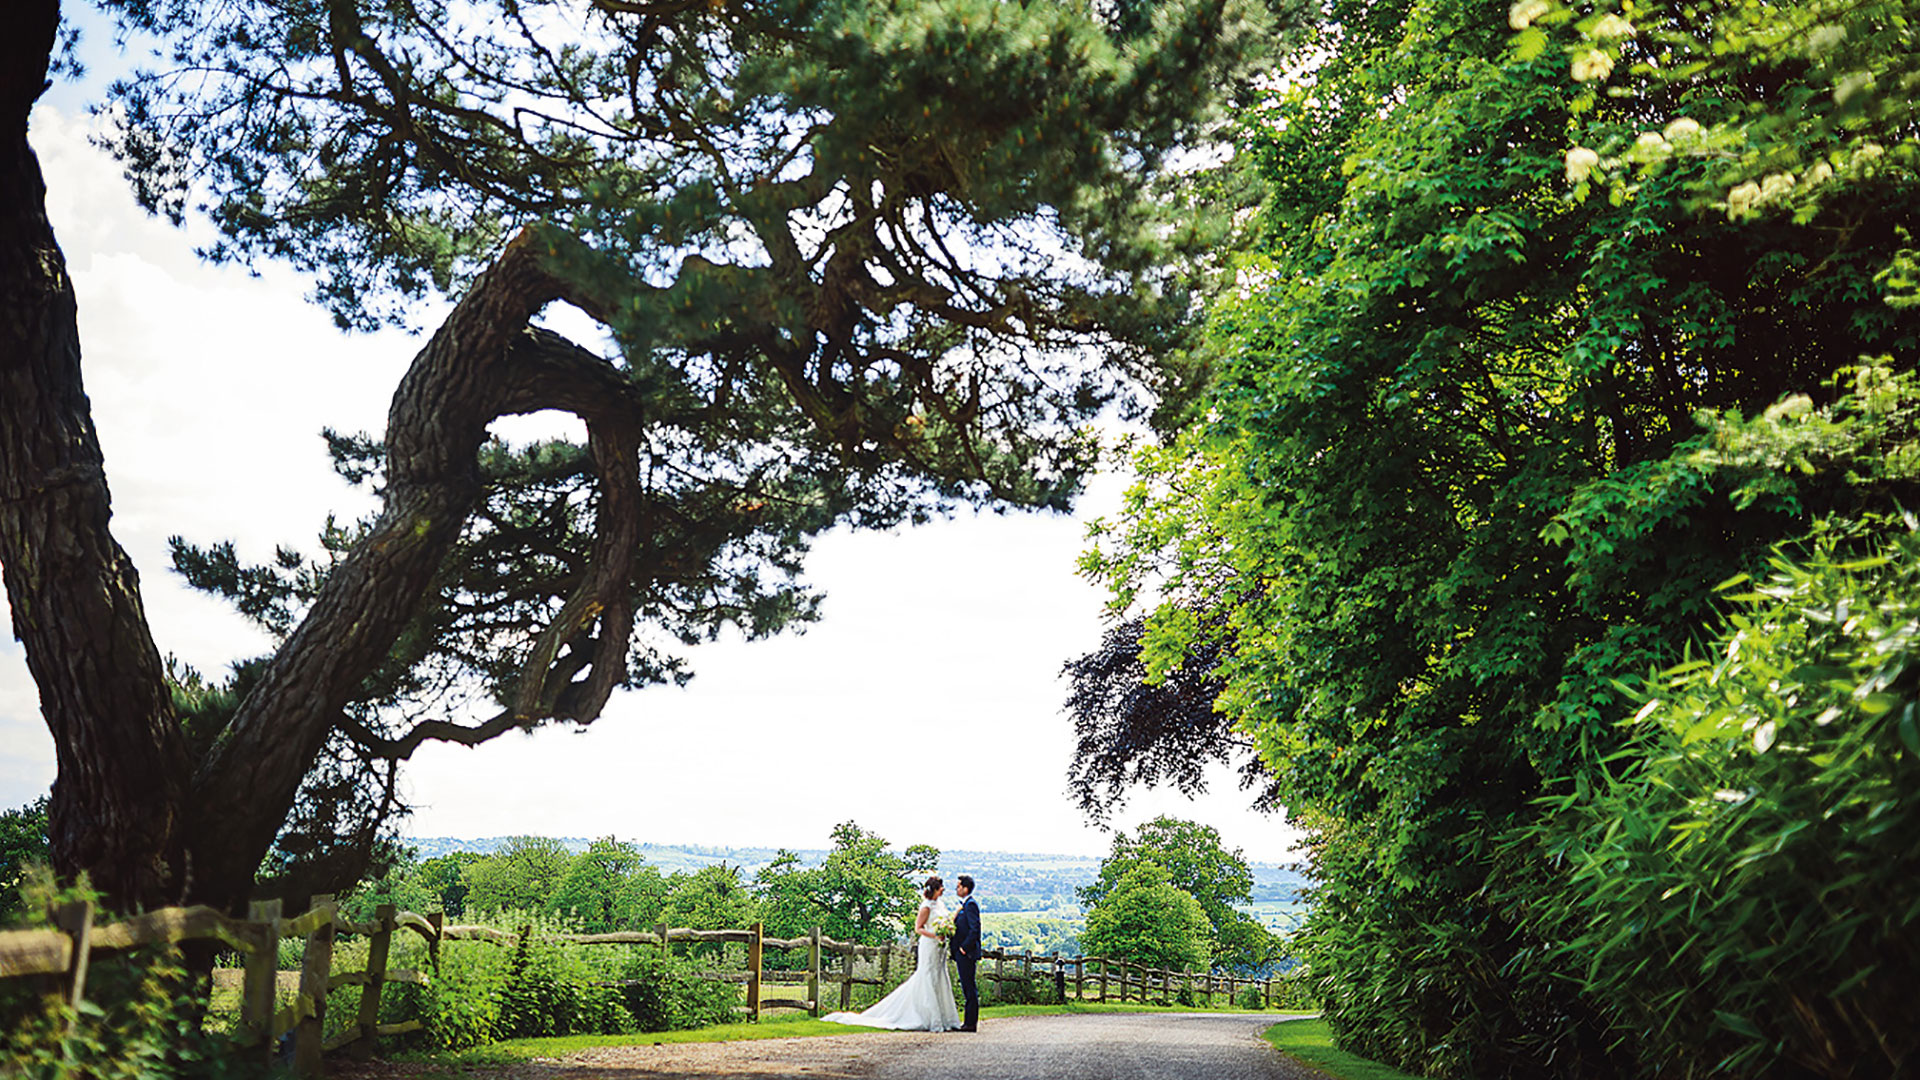 A couple steal a moment away on the entrance drive of this exquisite countryside wedding venue in Essex